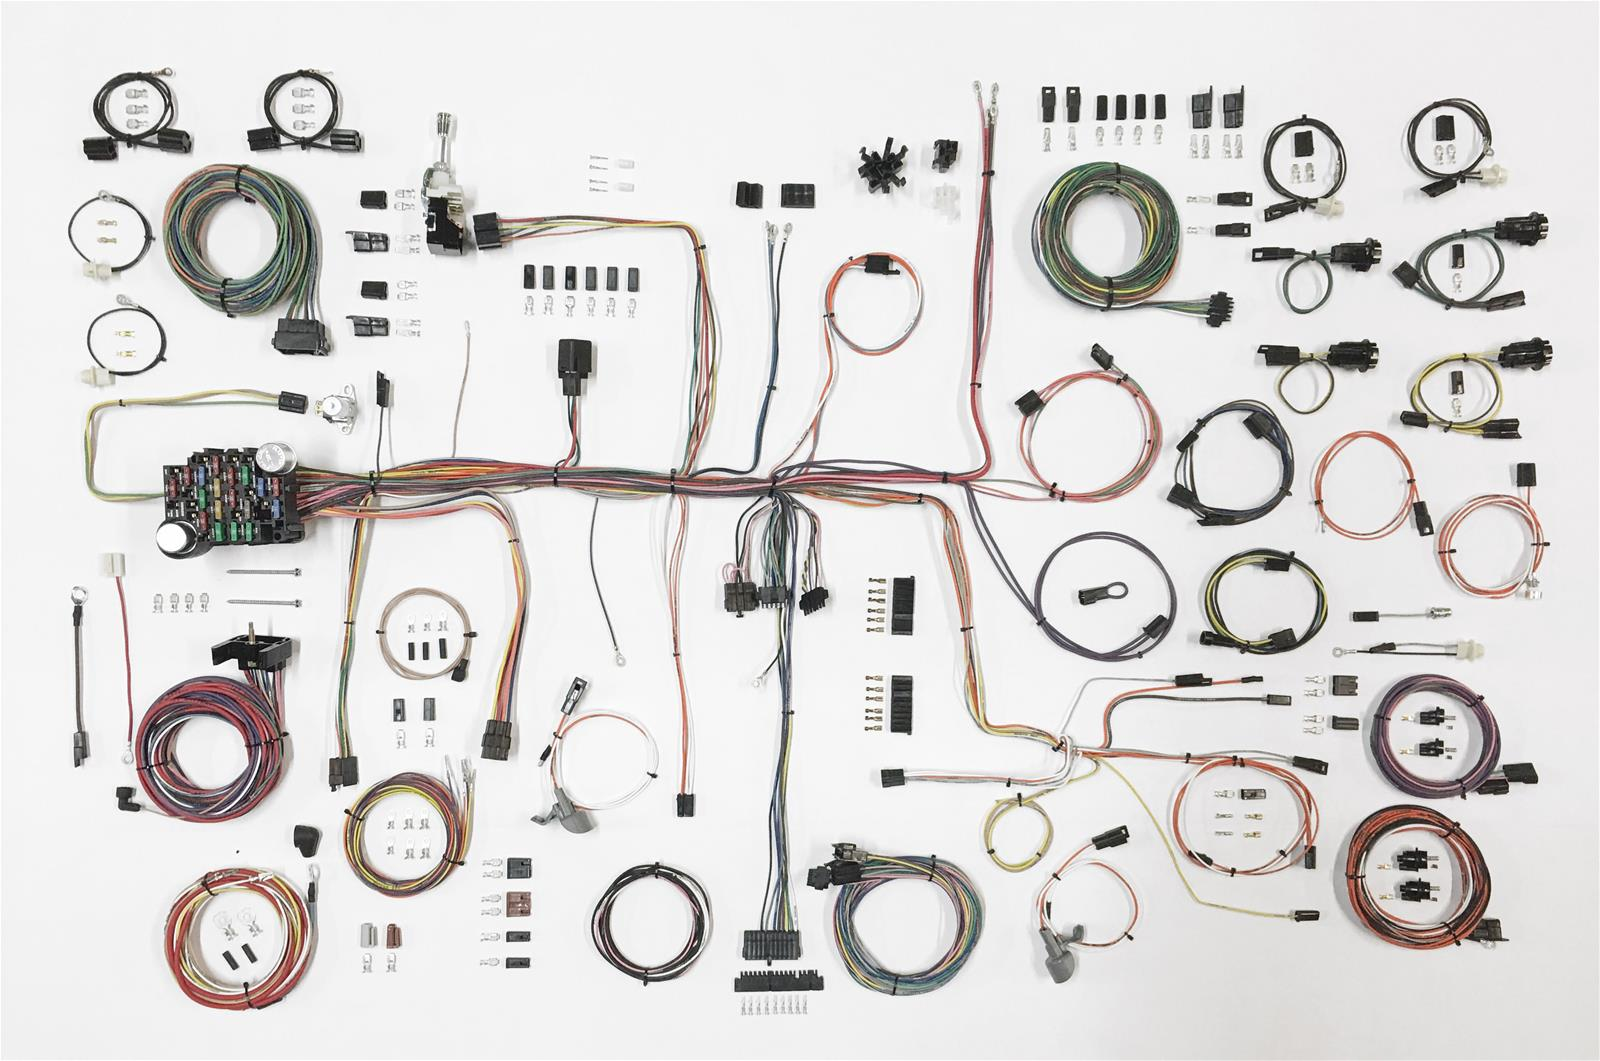 hight resolution of american autowire classic update series wiring harness kits 510645 free shipping on orders over 99 at summit racing